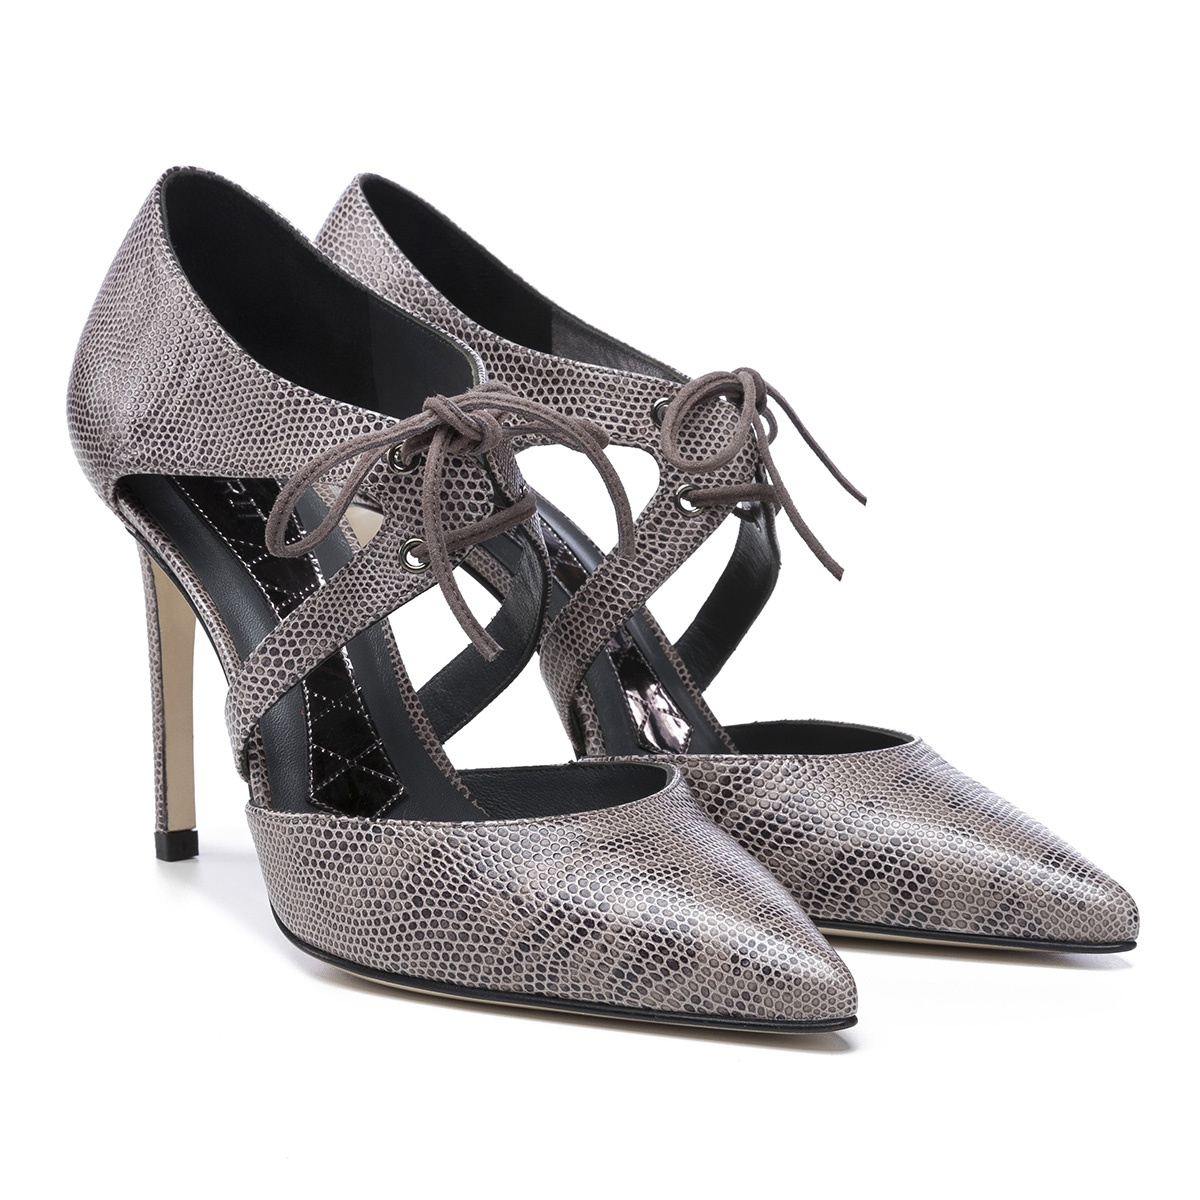 Magrit 'Marcela' taupe reptile lace-up pumps